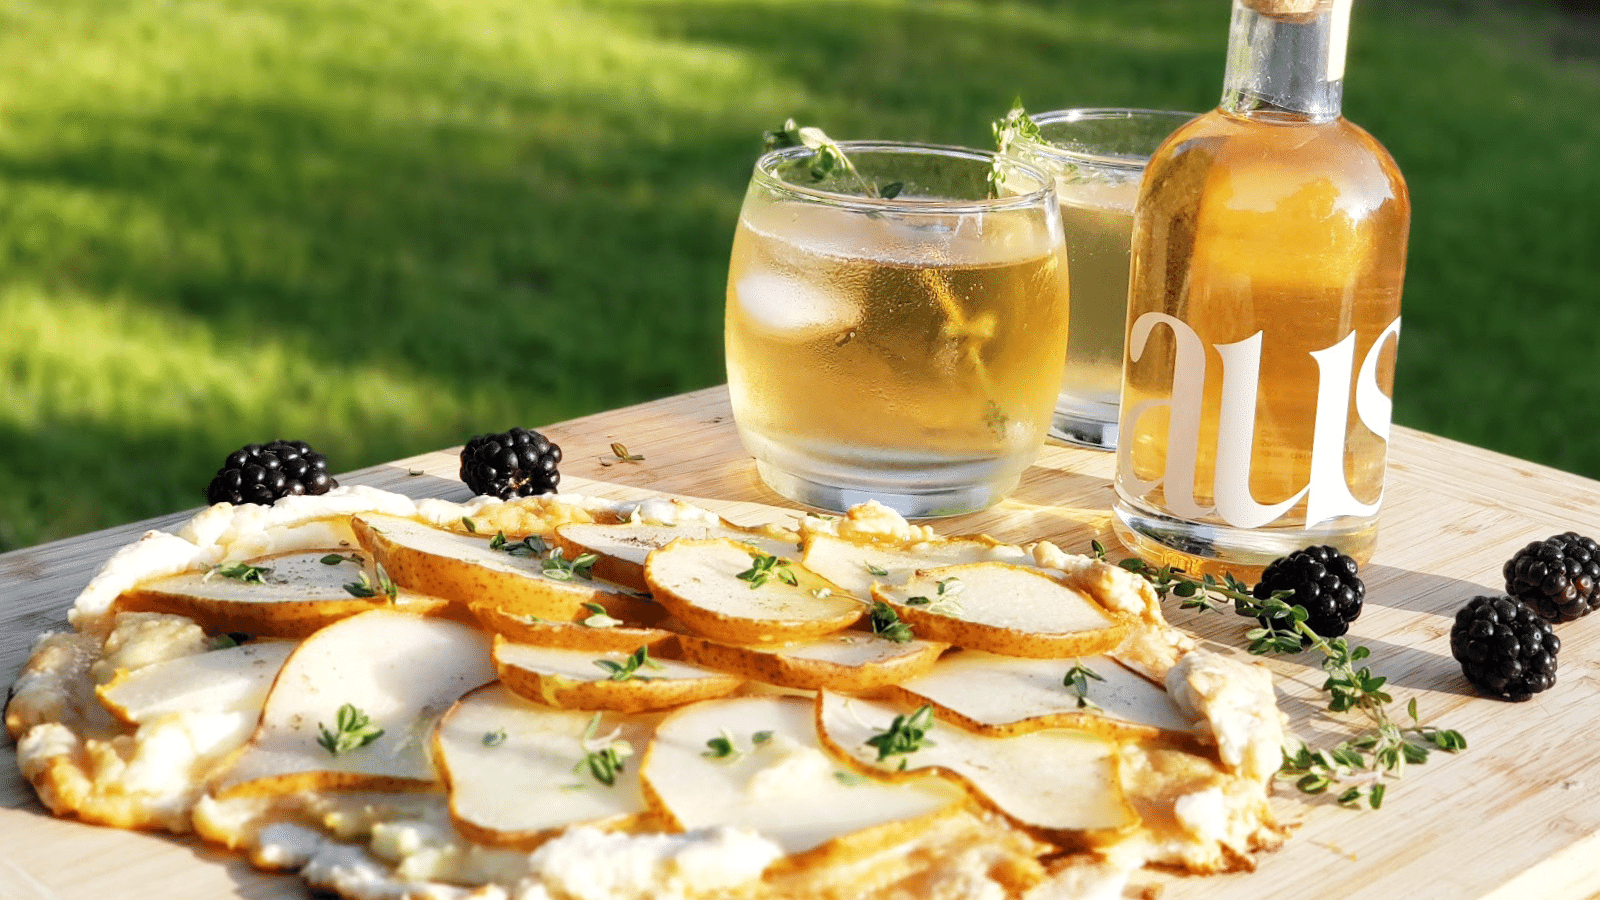 Honied Pear & Thyme Tart with Botanical Cocktails